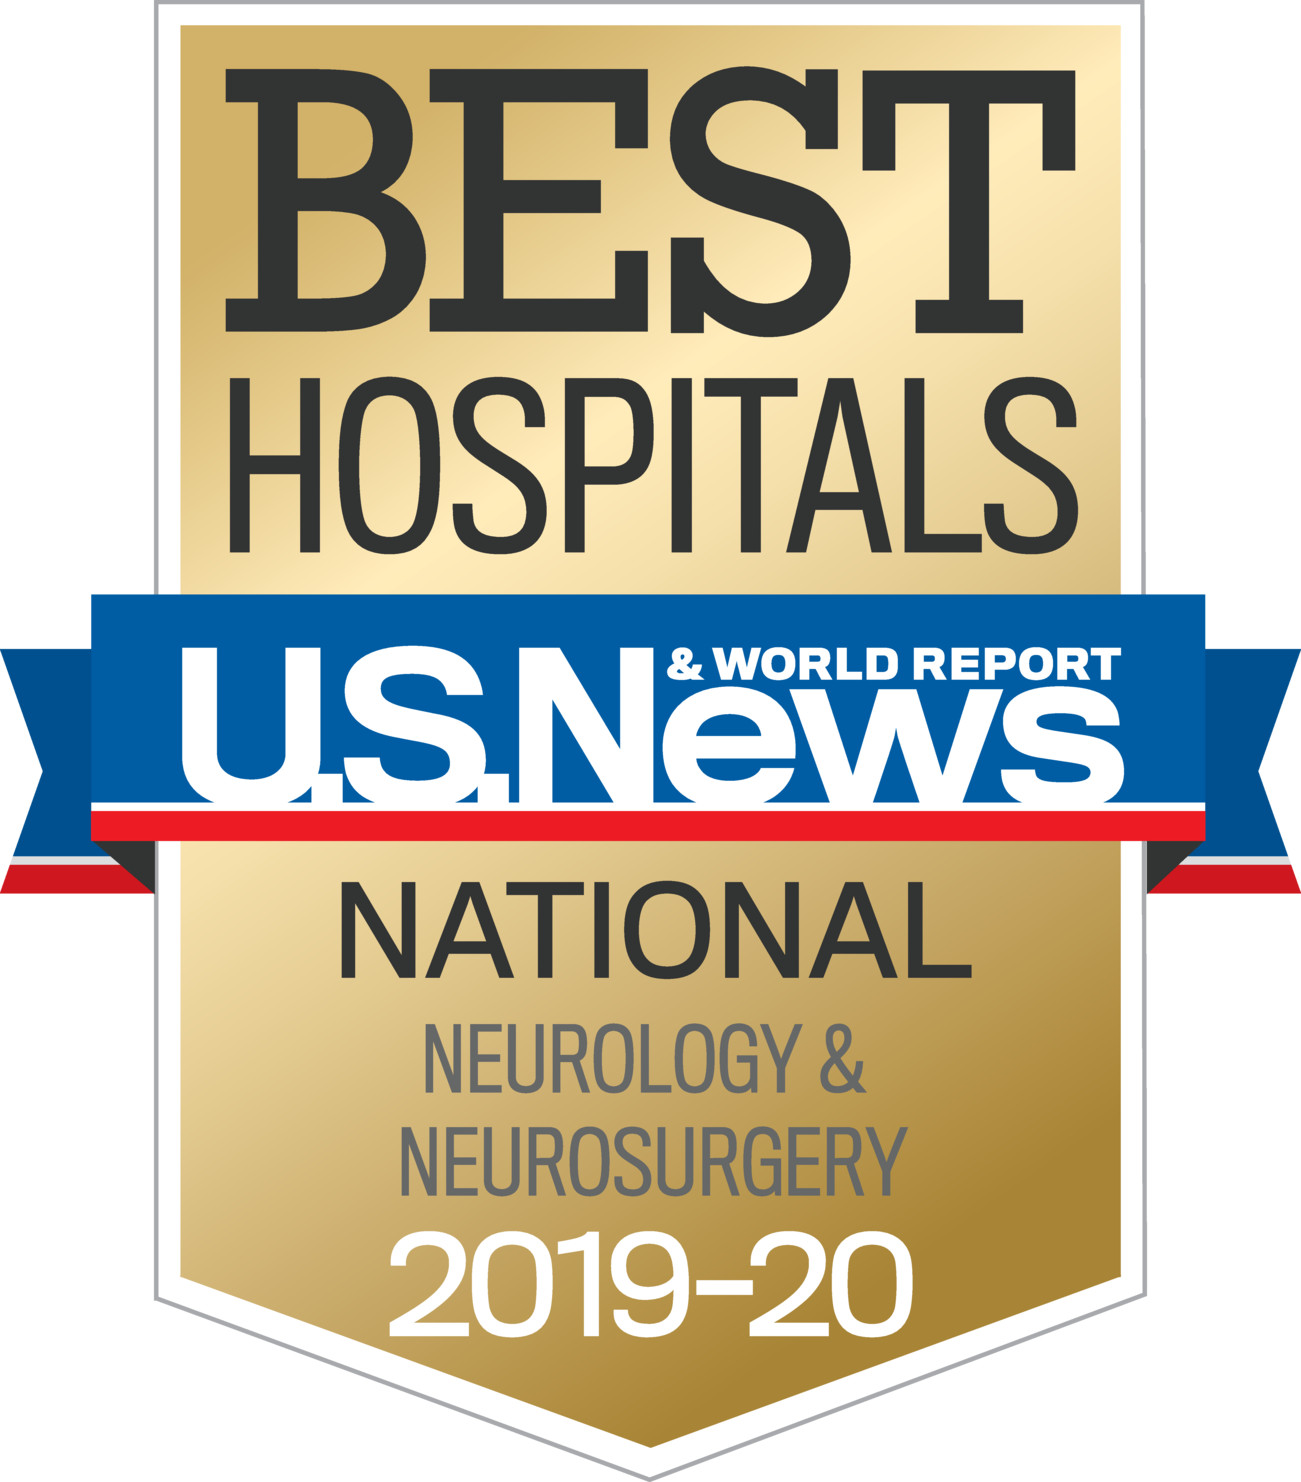 US News 2019 Nationally Ranked in Neurology and Neurosurgery